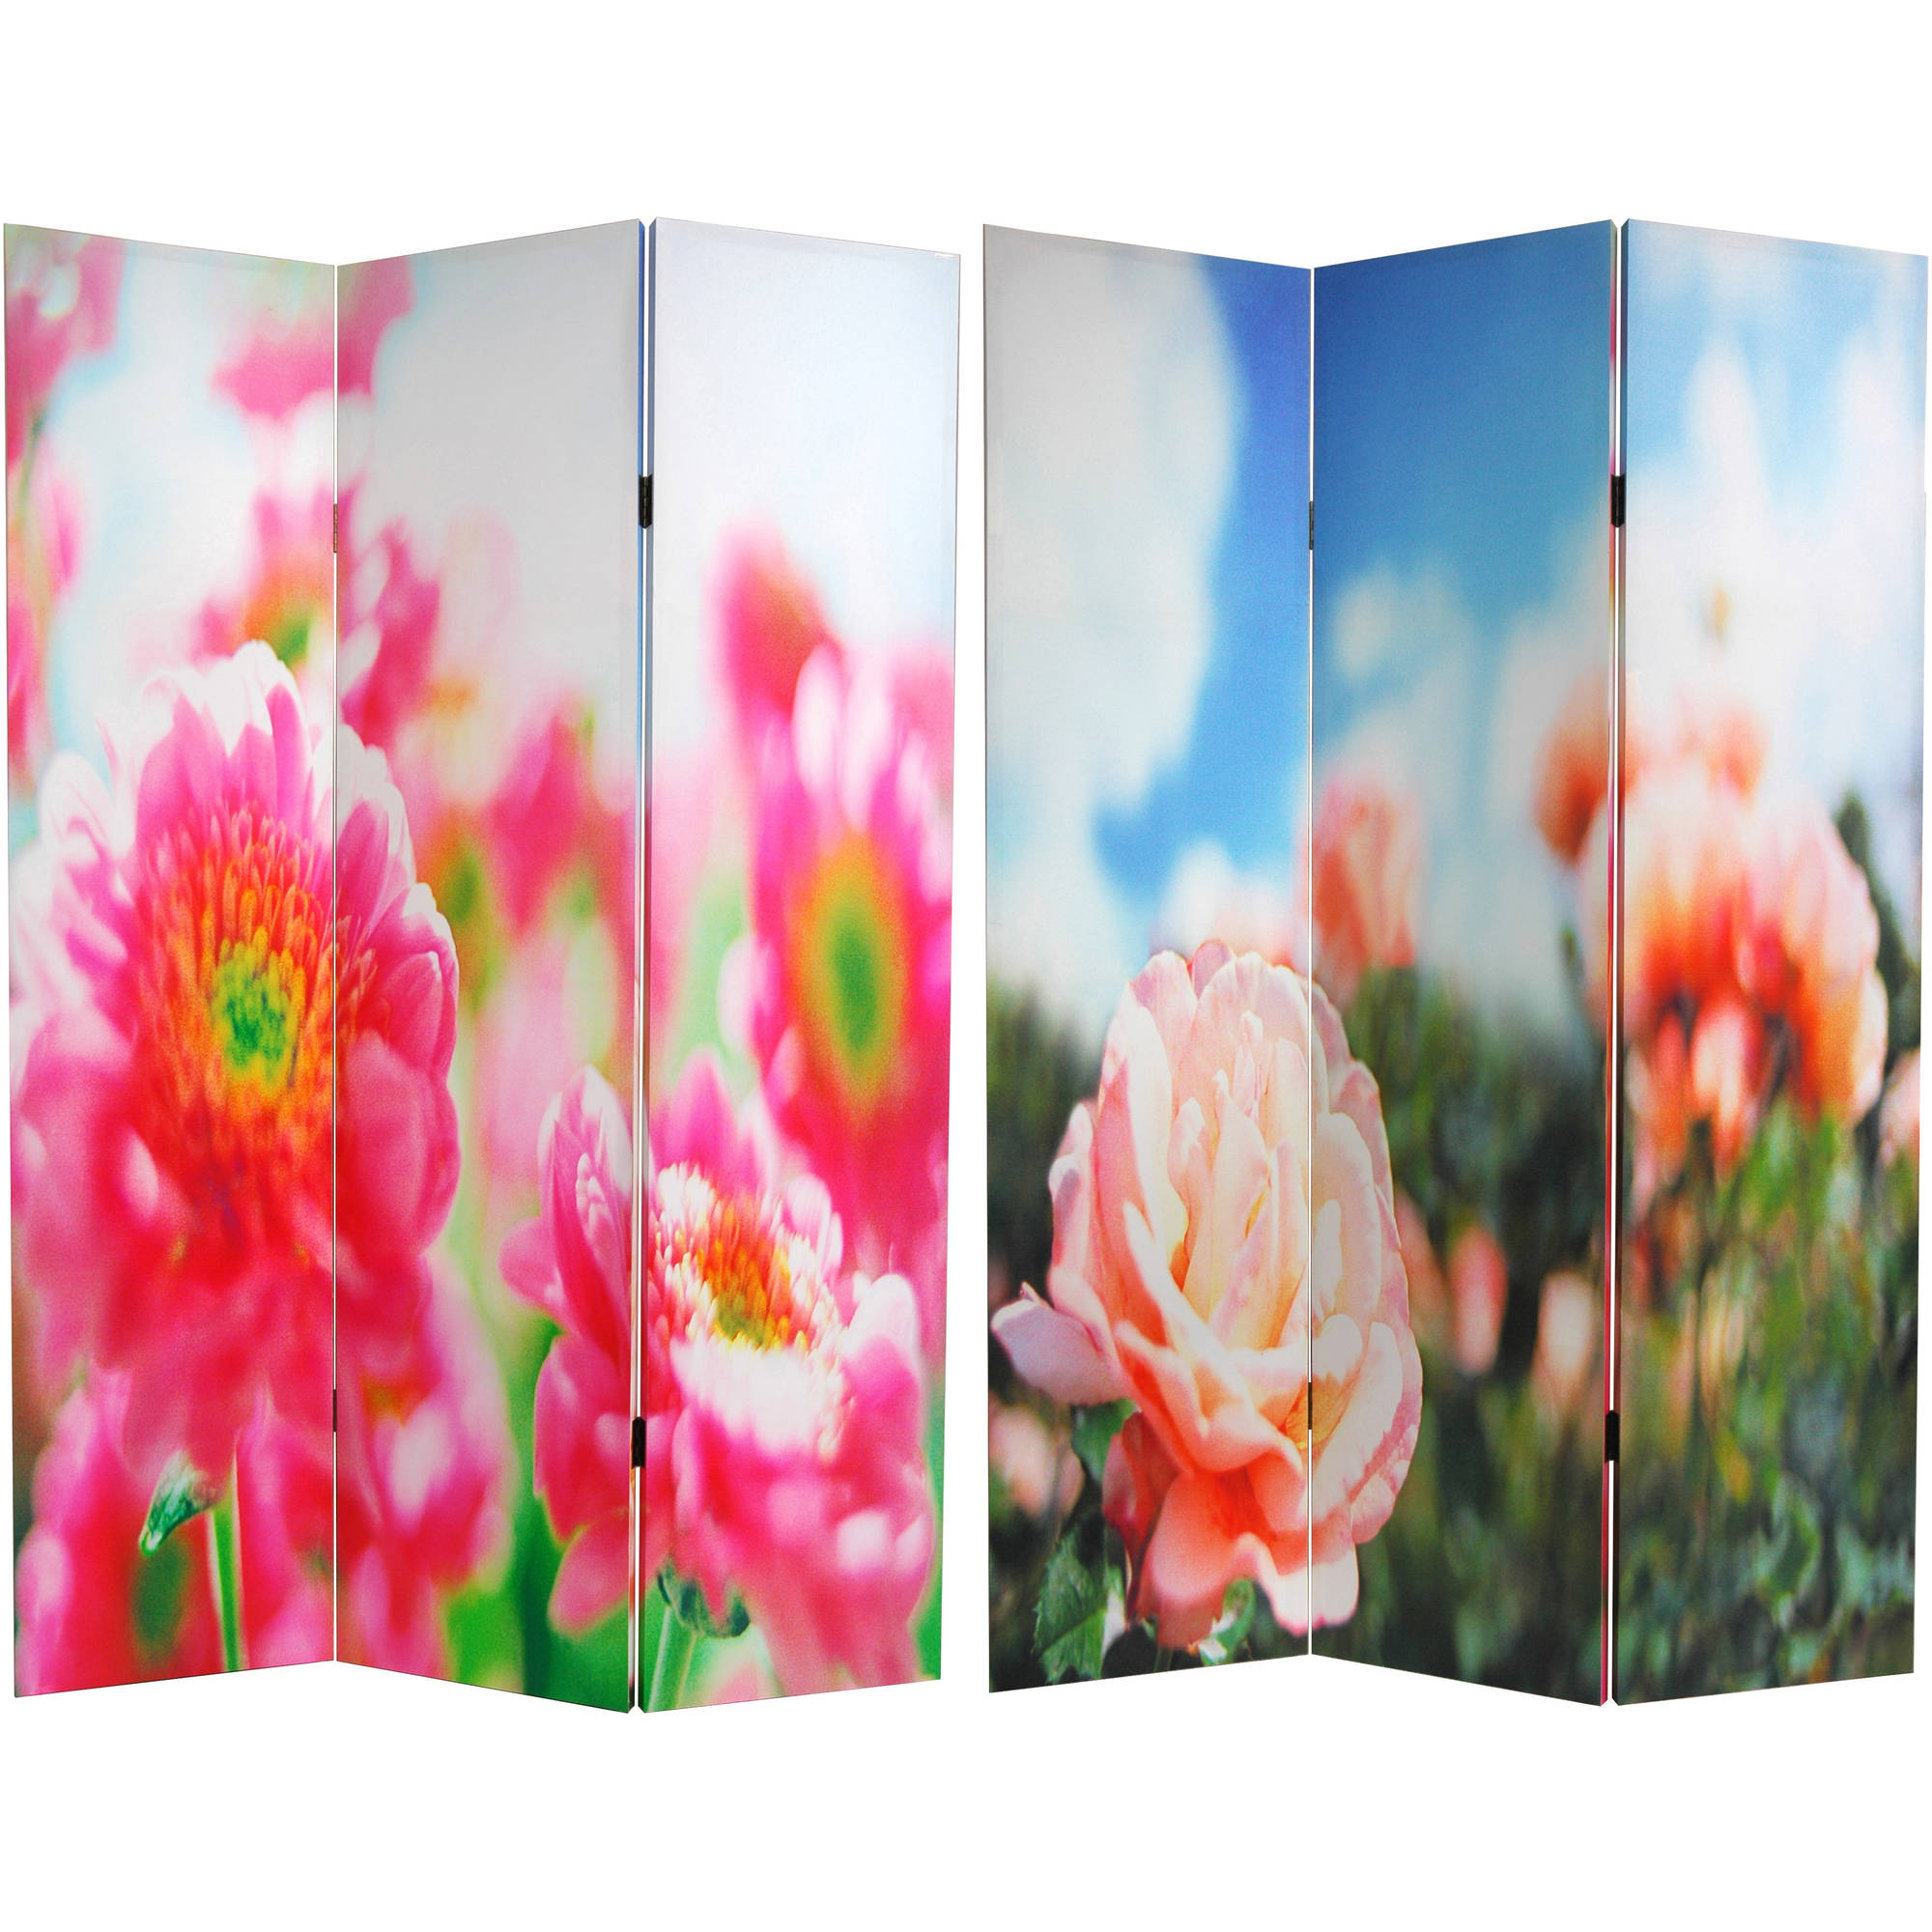 6' Tall Double Sided Summer Flowers Canvas Room Divider